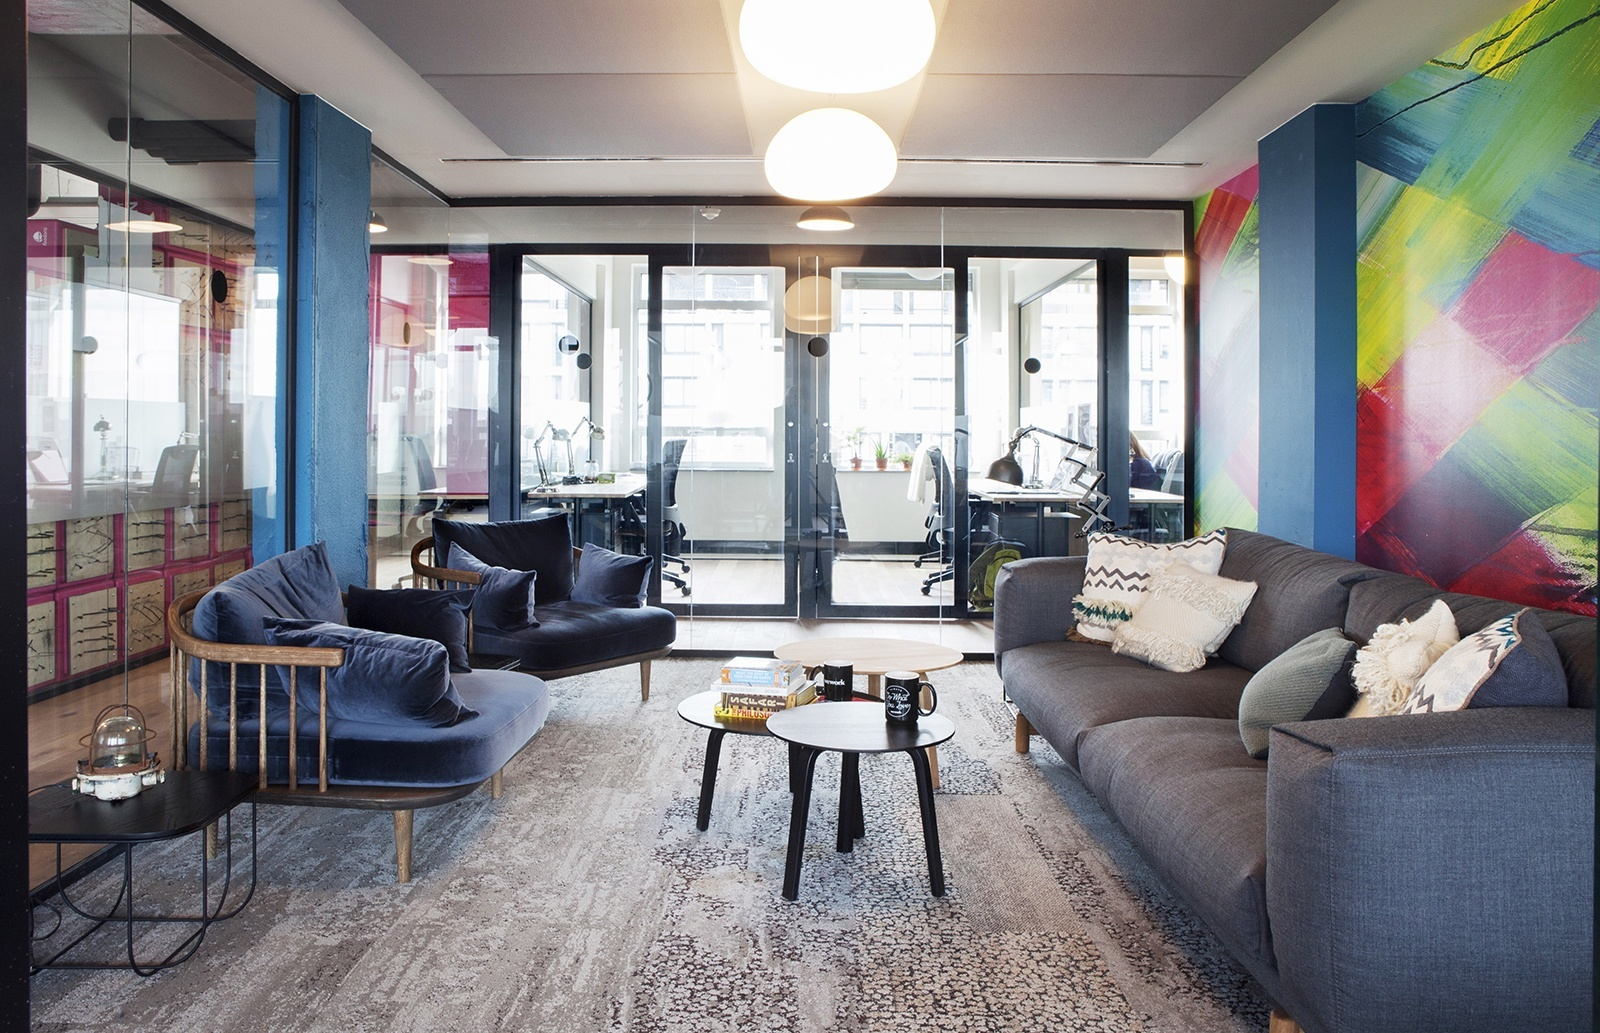 Rooms: A Tour Of WeWork's New Coworking Space In Amsterdam